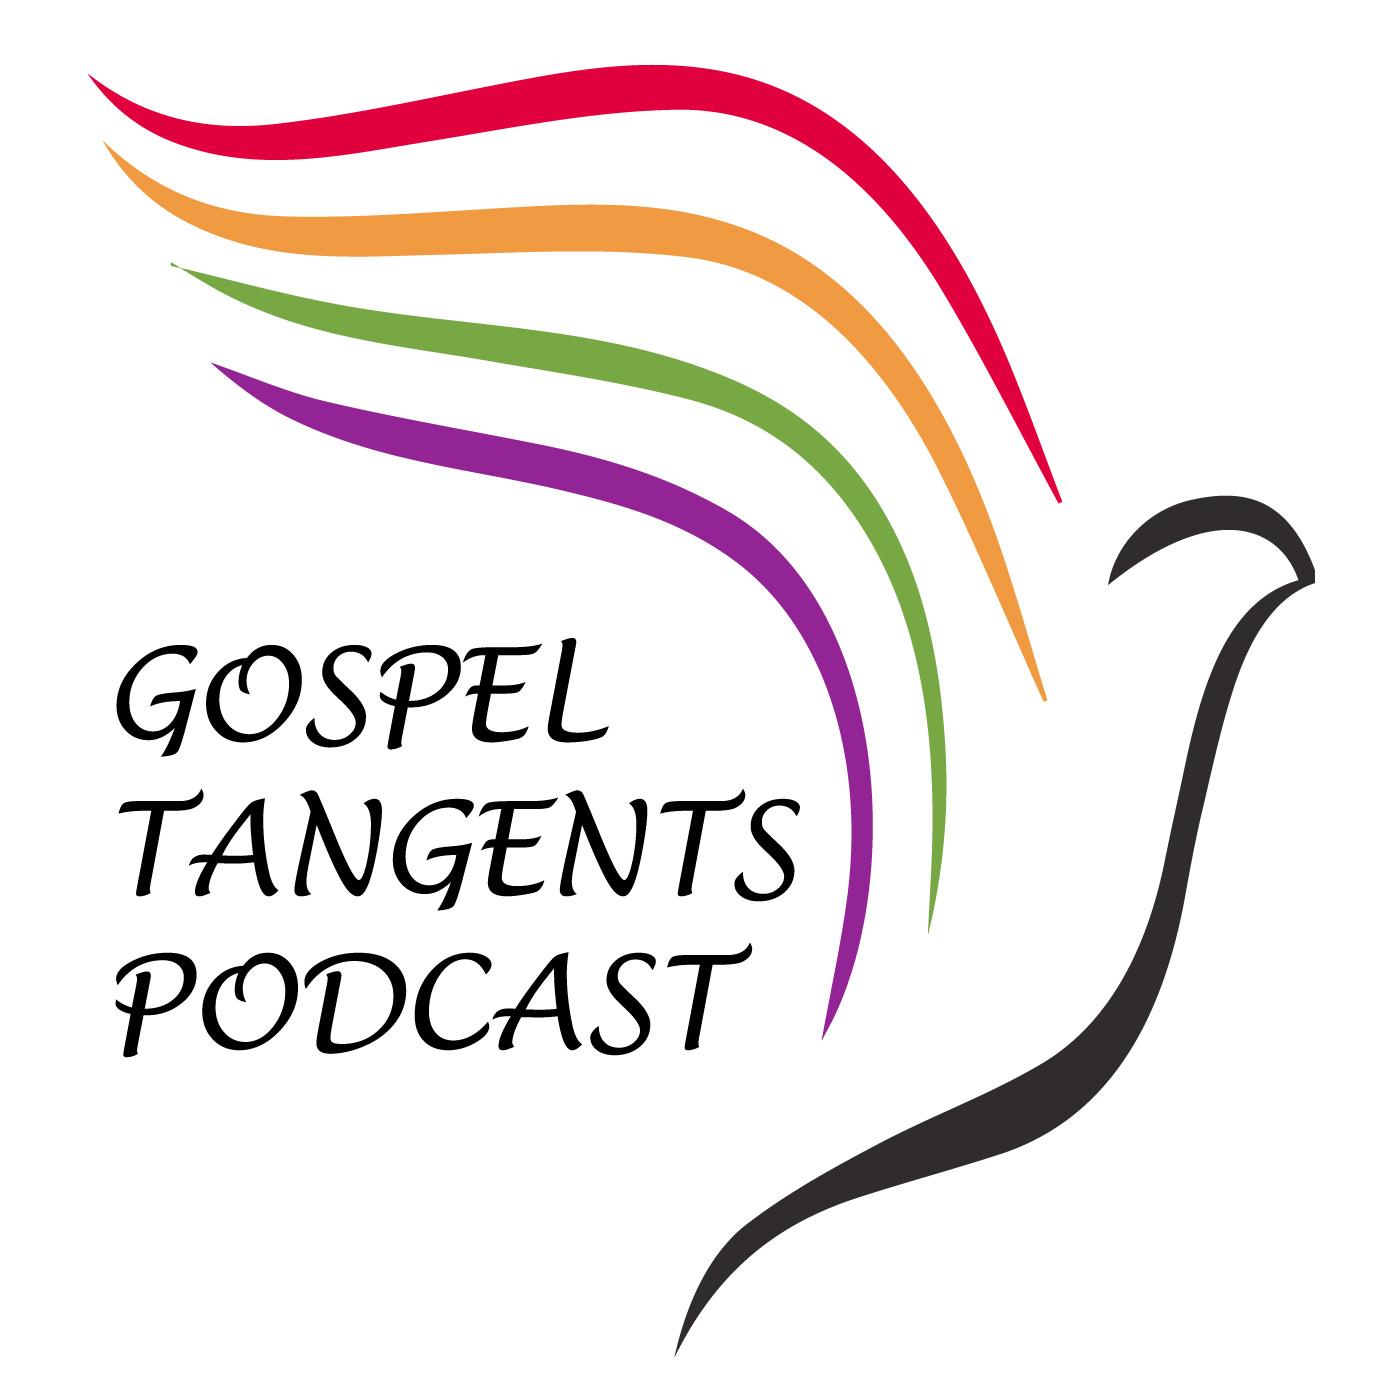 Gospel Tangents Podcast